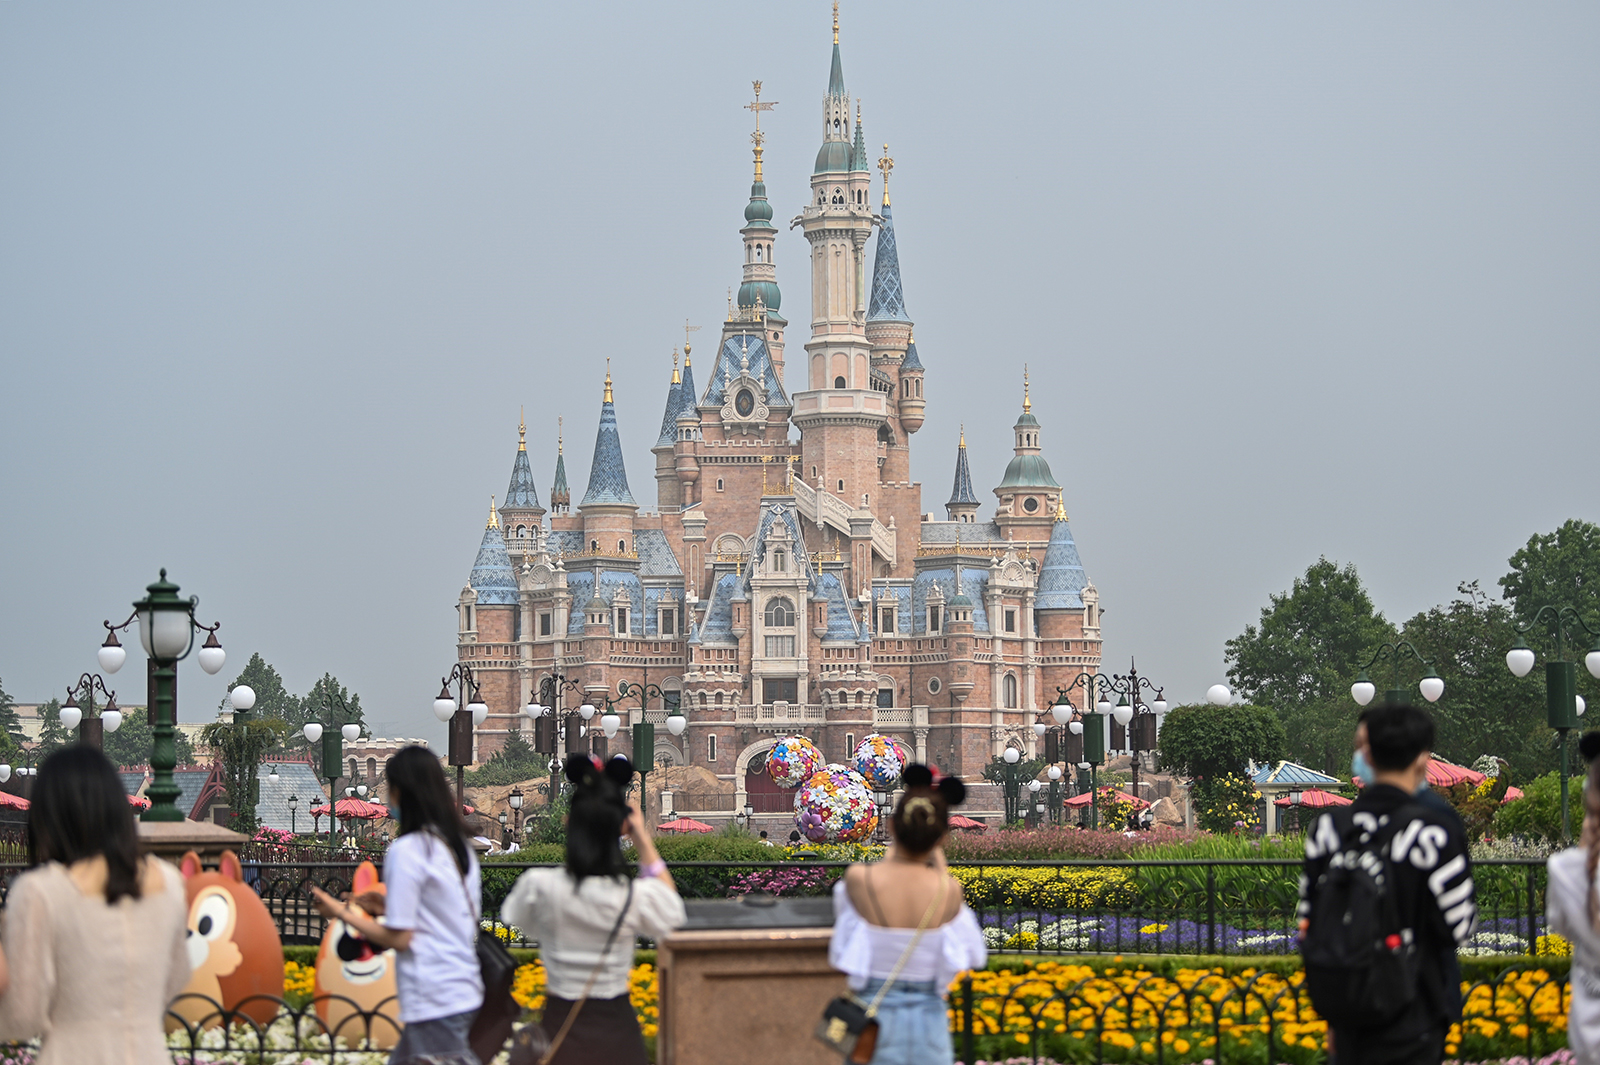 People visit the Disneyland amusement park in Shanghai, China, on May 11, 2020.